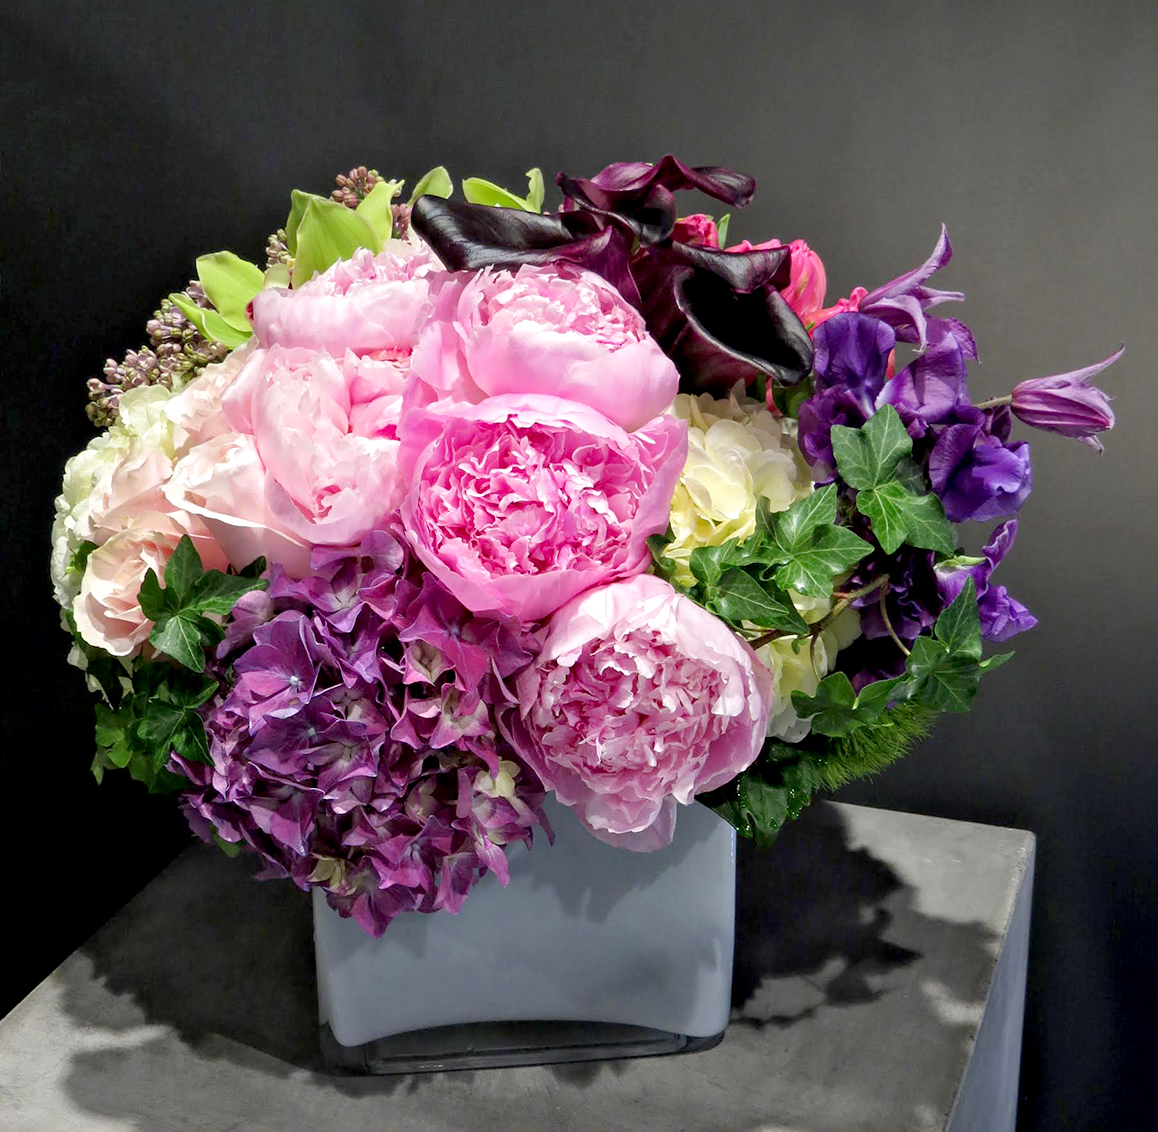 Pink, purple and green flowers designed for restaurant decor by Bouquets & Beyond in Woodbury